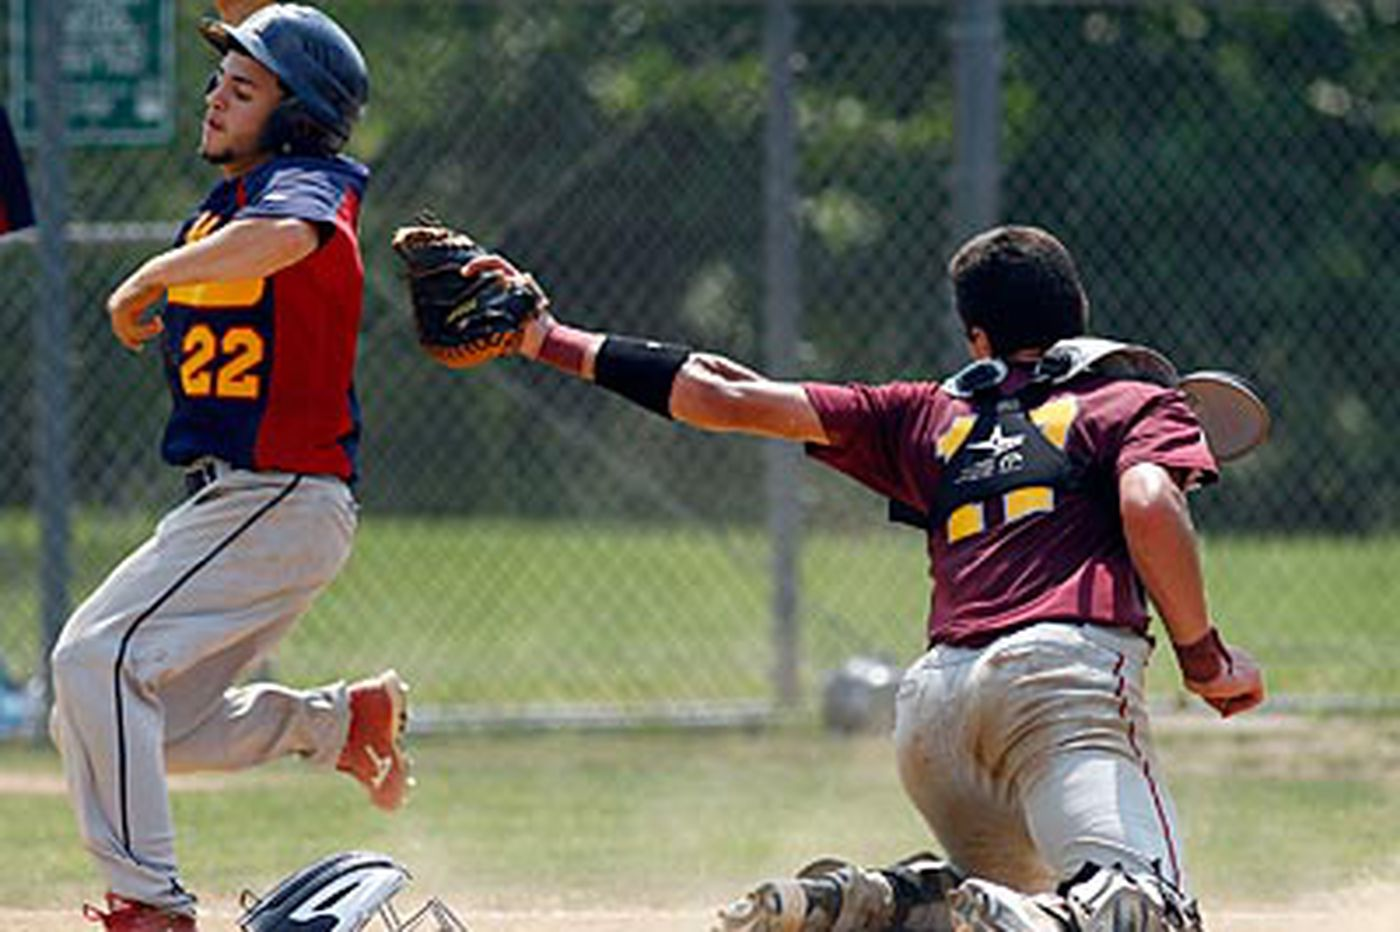 Frankford reaches Pub final with win over Central